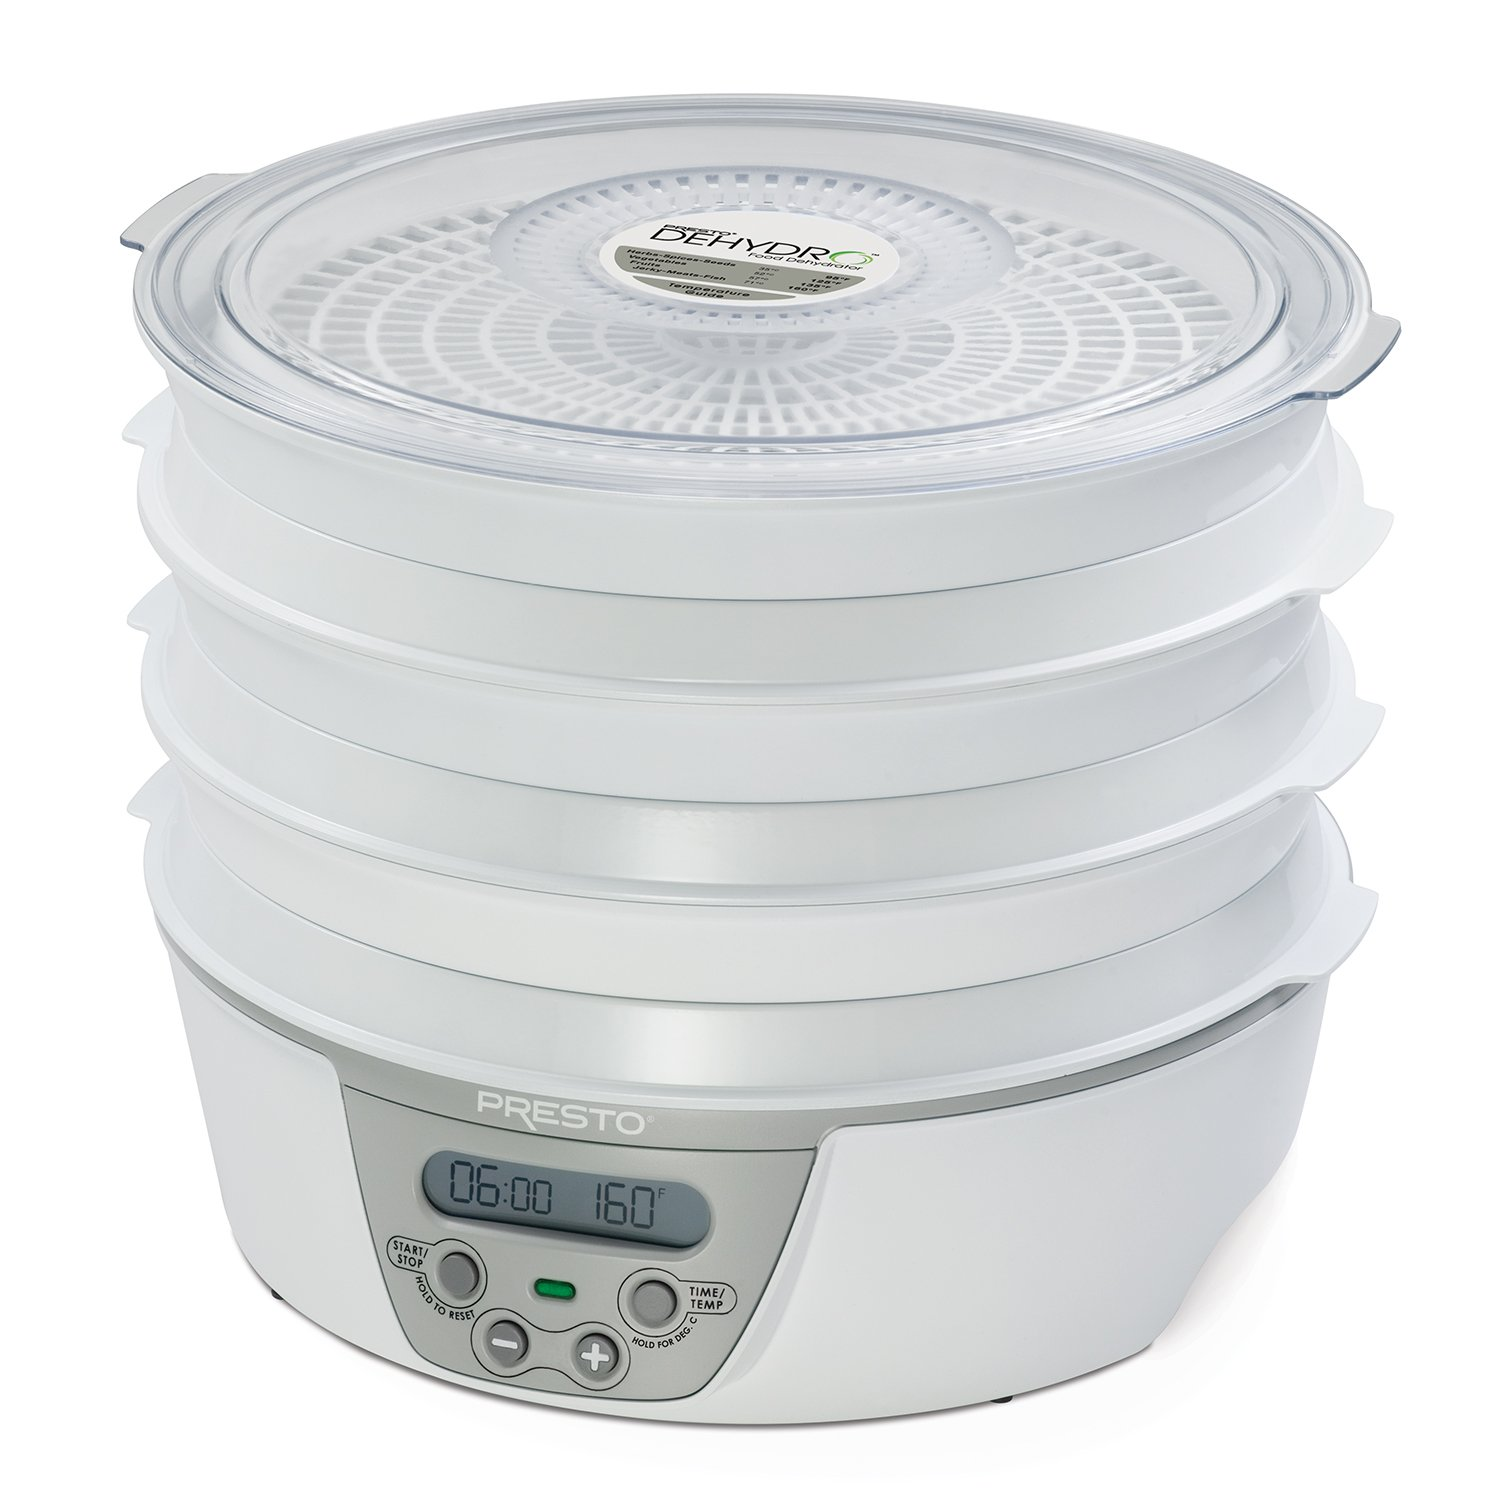 Presto 06301 Dehydro Electric Food Dehydrator